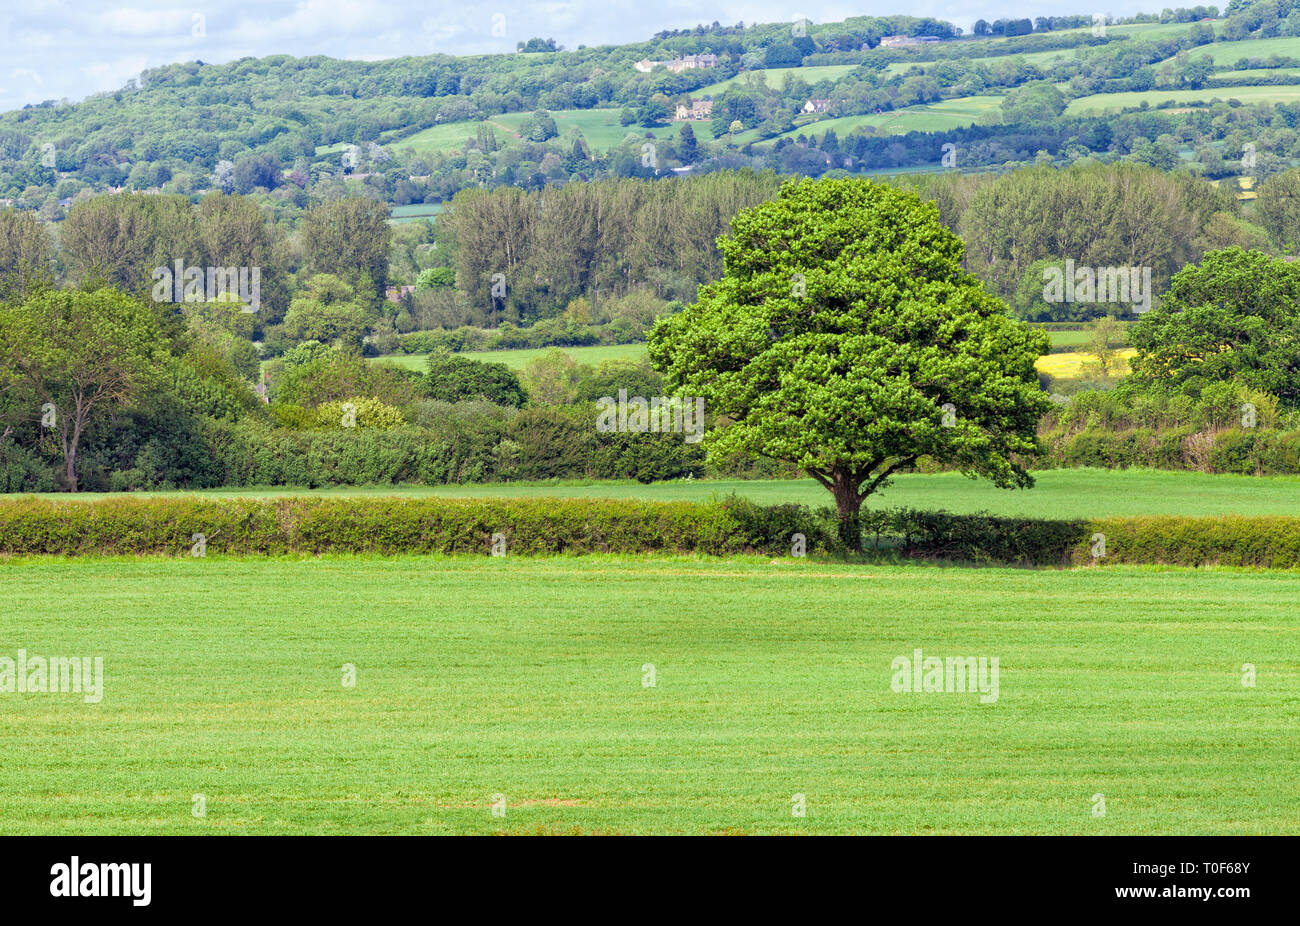 Leafy tree in the middle of green farm field, surrounded by hedgerow, woodlands with country houses on a hill, Cotswolds countryside on a summer day . - Stock Image